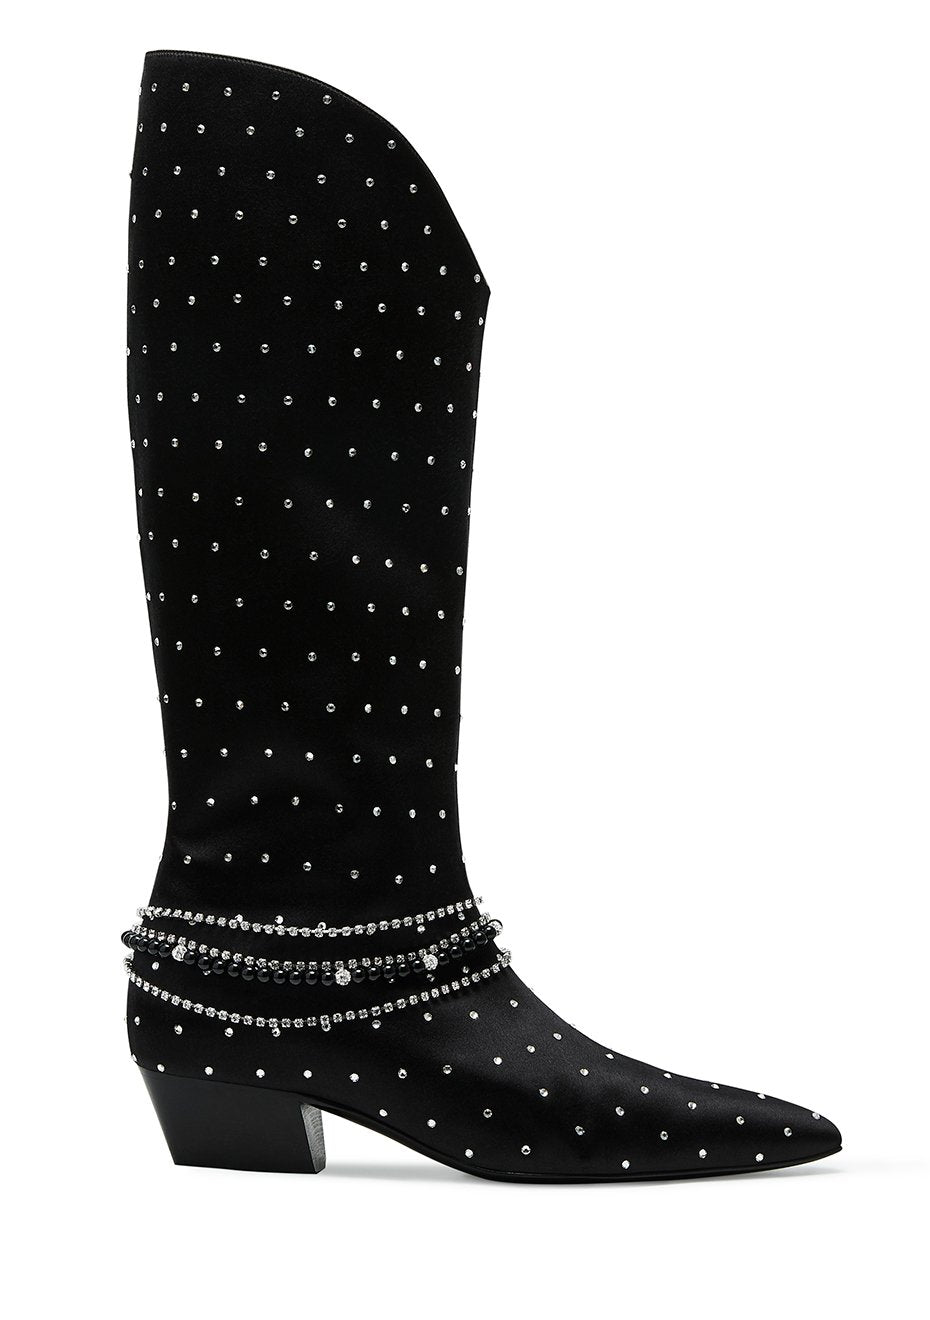 Magde Butrym Mexico Embellished Boots